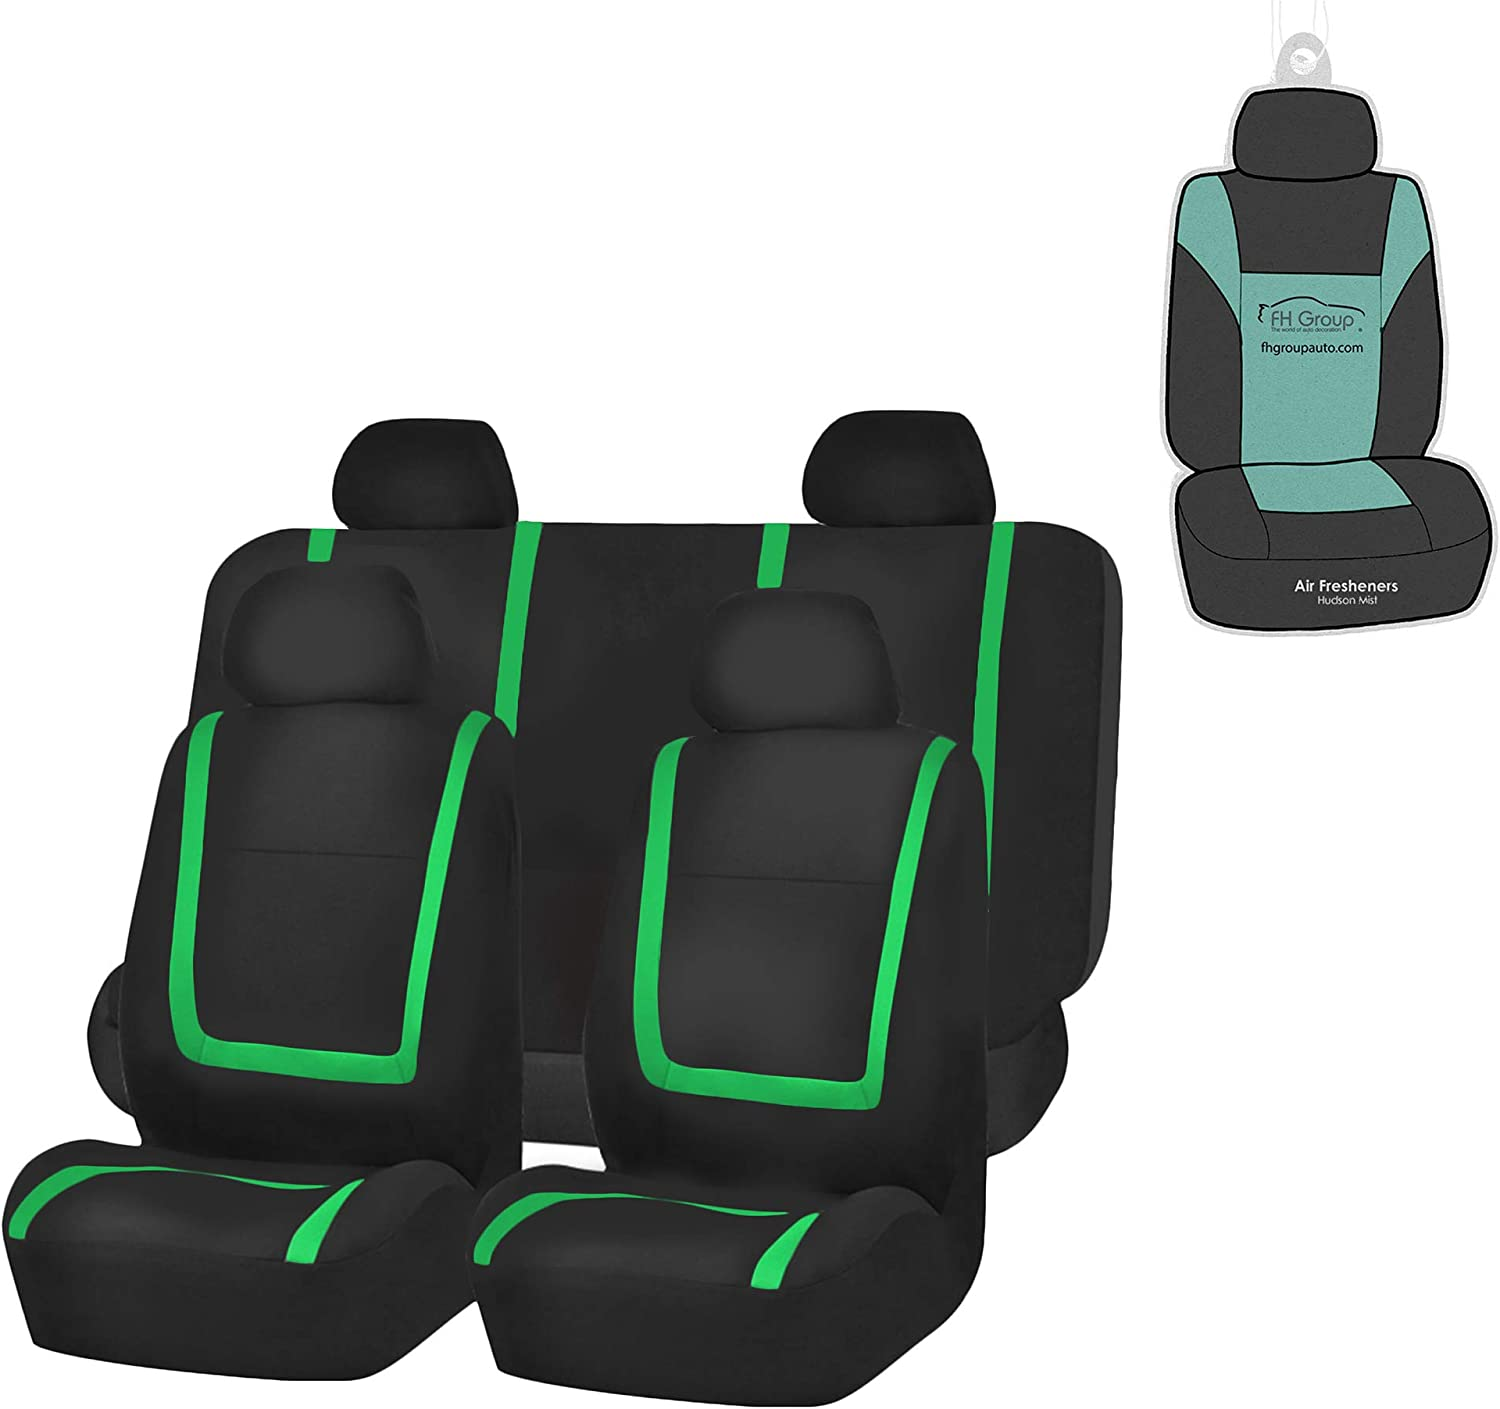 FH Group FB032114 Unique Flat Cloth Seat Covers (Green) Full Set with Gift – Universal Fit for Cars Trucks & SUVs